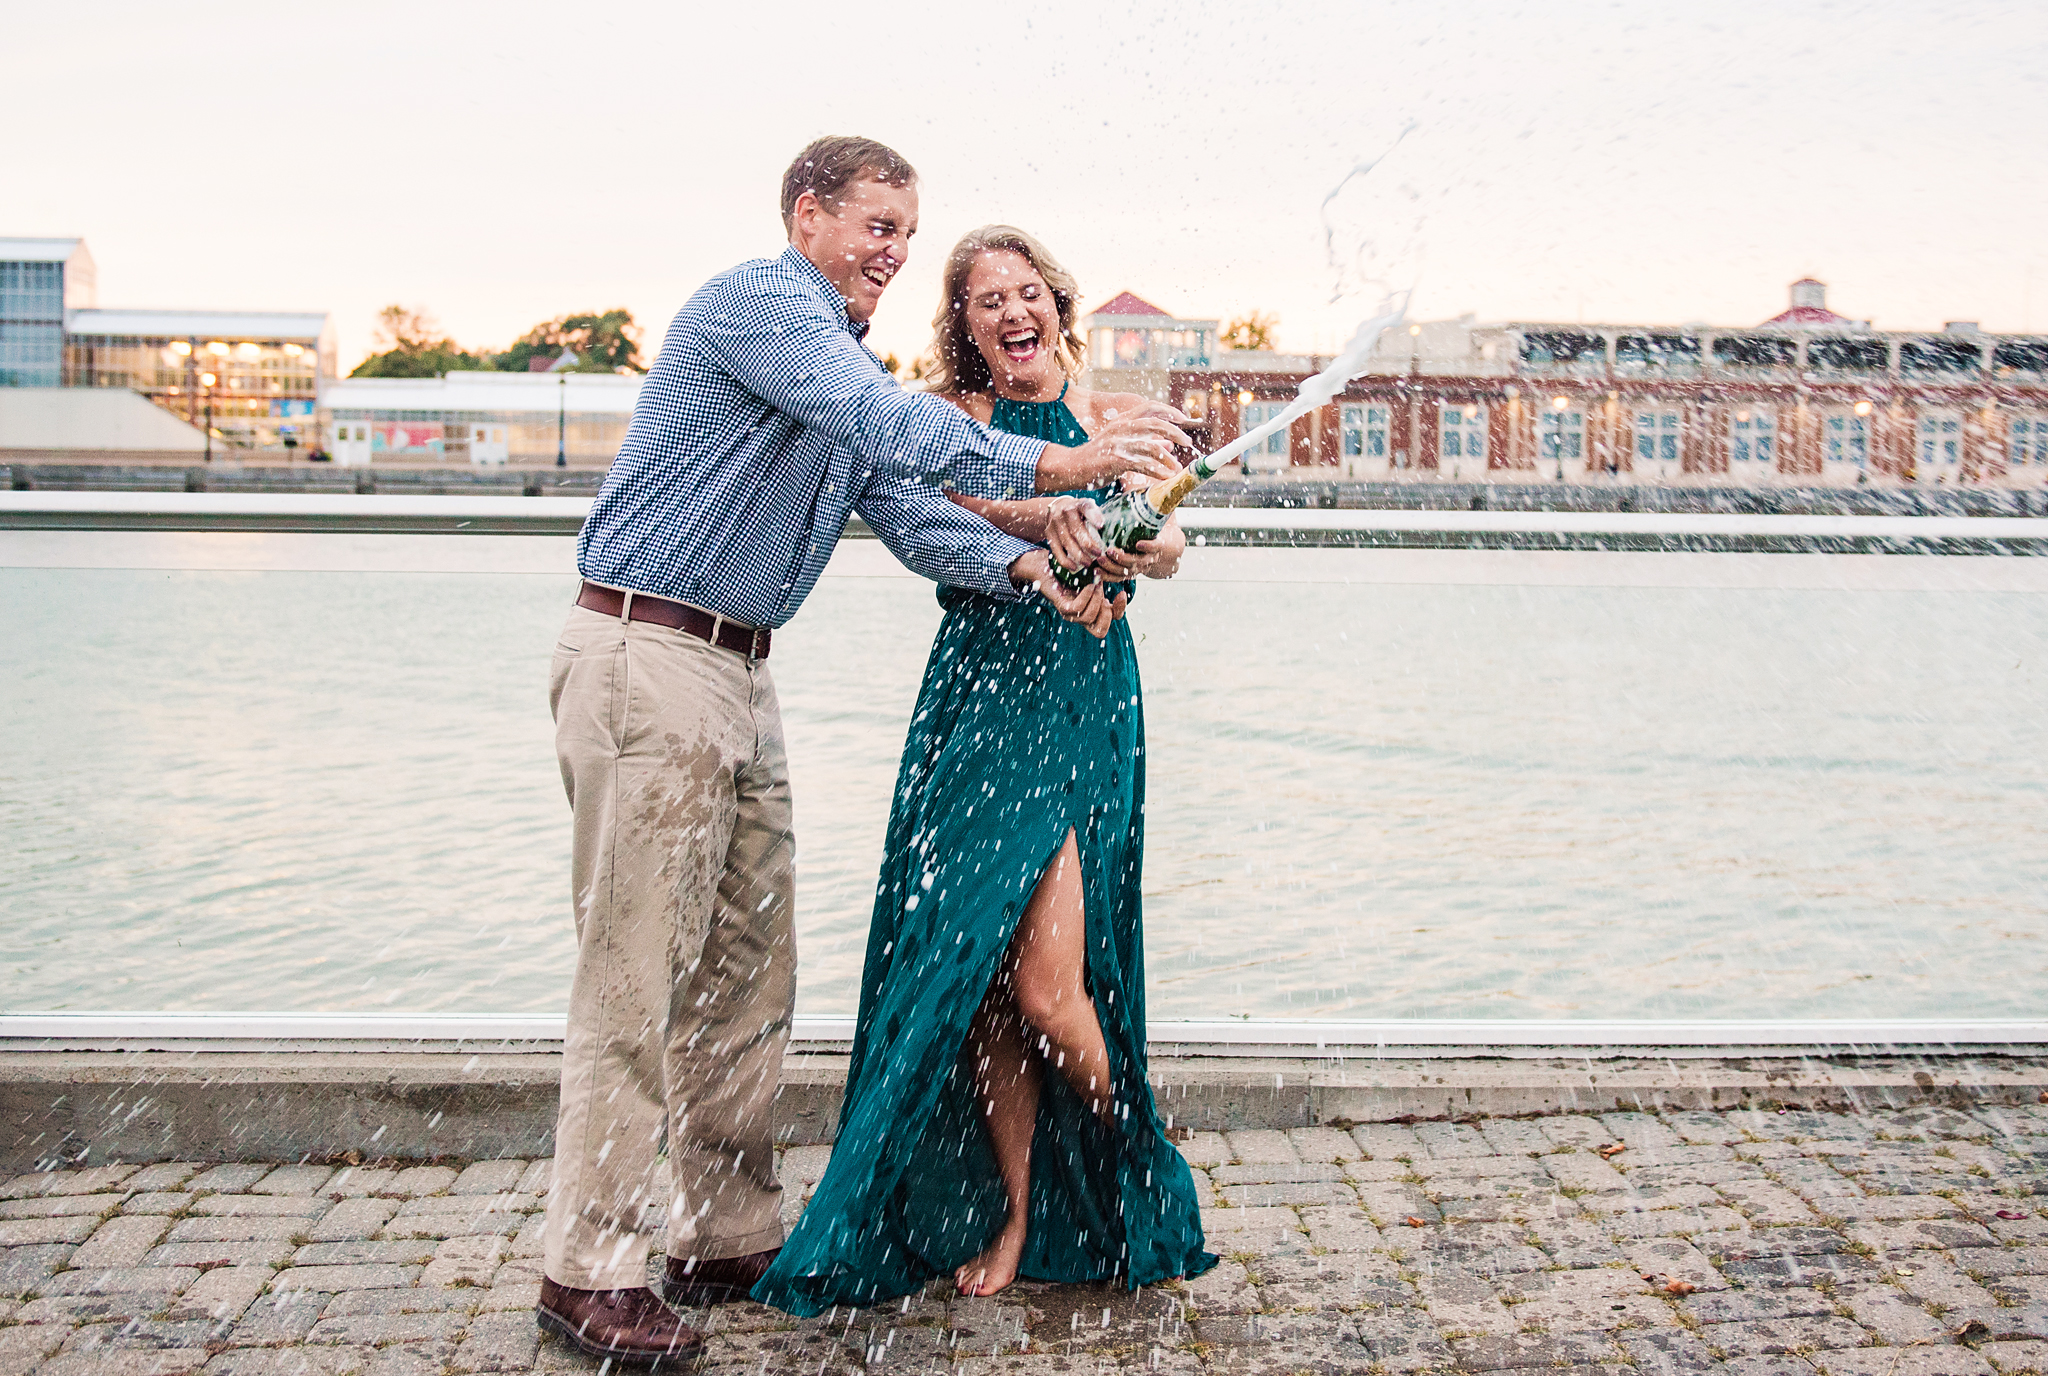 George_Eastman_House_Rochester_Yacht_Club_Rochester_Engagement_Session_JILL_STUDIO_Rochester_NY_Photographer_DSC_8292.jpg